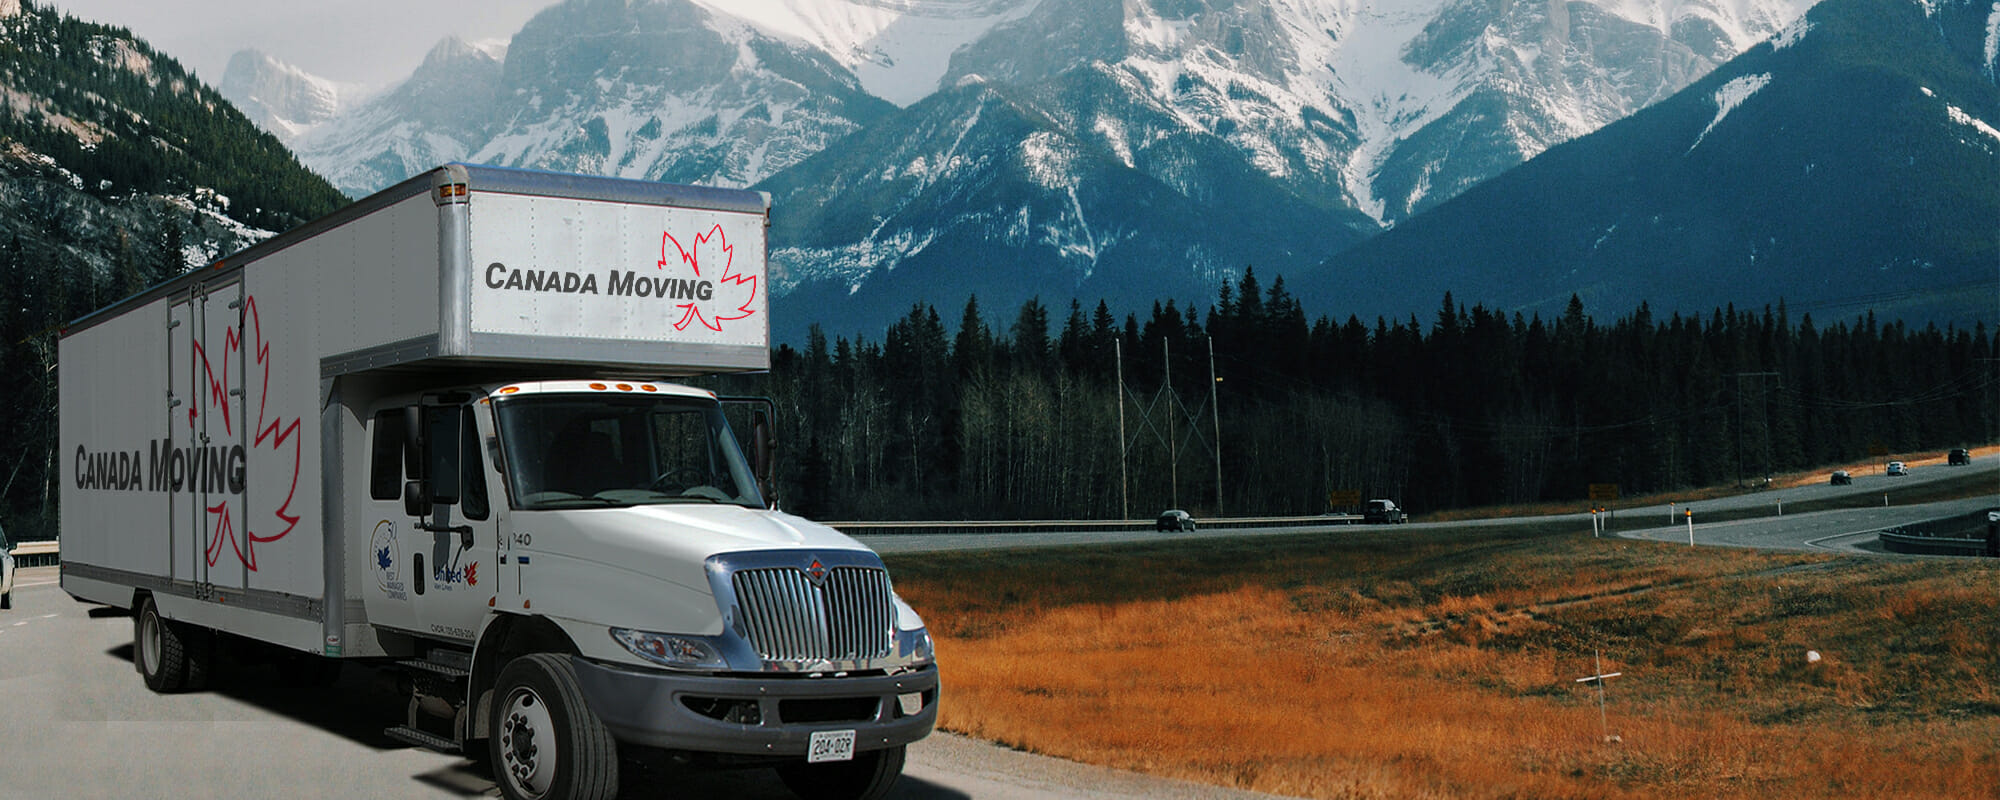 Rocky at R & B Moving Systems (A Canada Moving Partner)